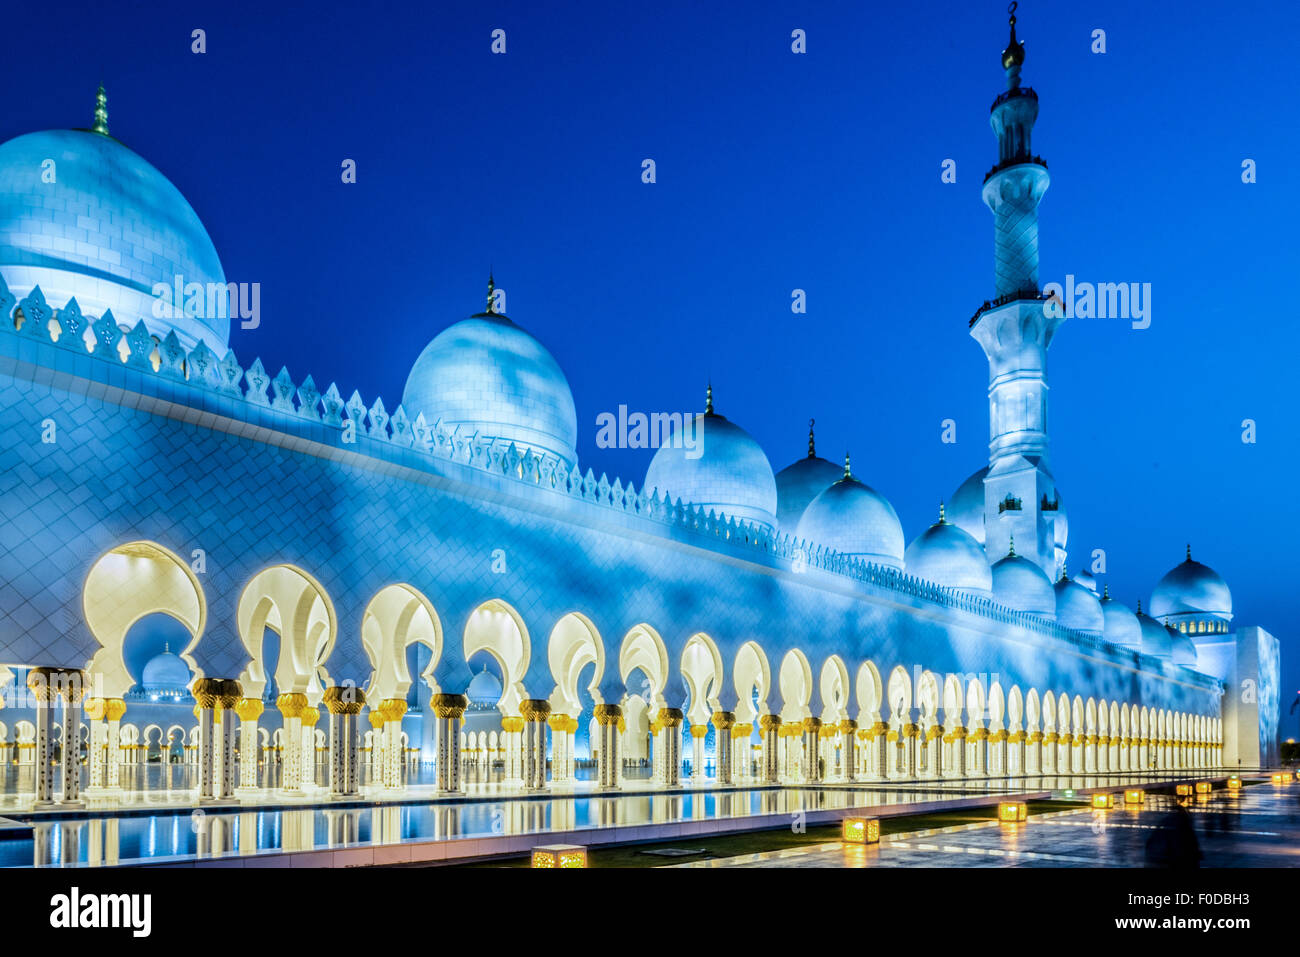 La Mosquée Sheikh Zayed, Abu Dhabi, Émirats Arabes Unis Photo Stock